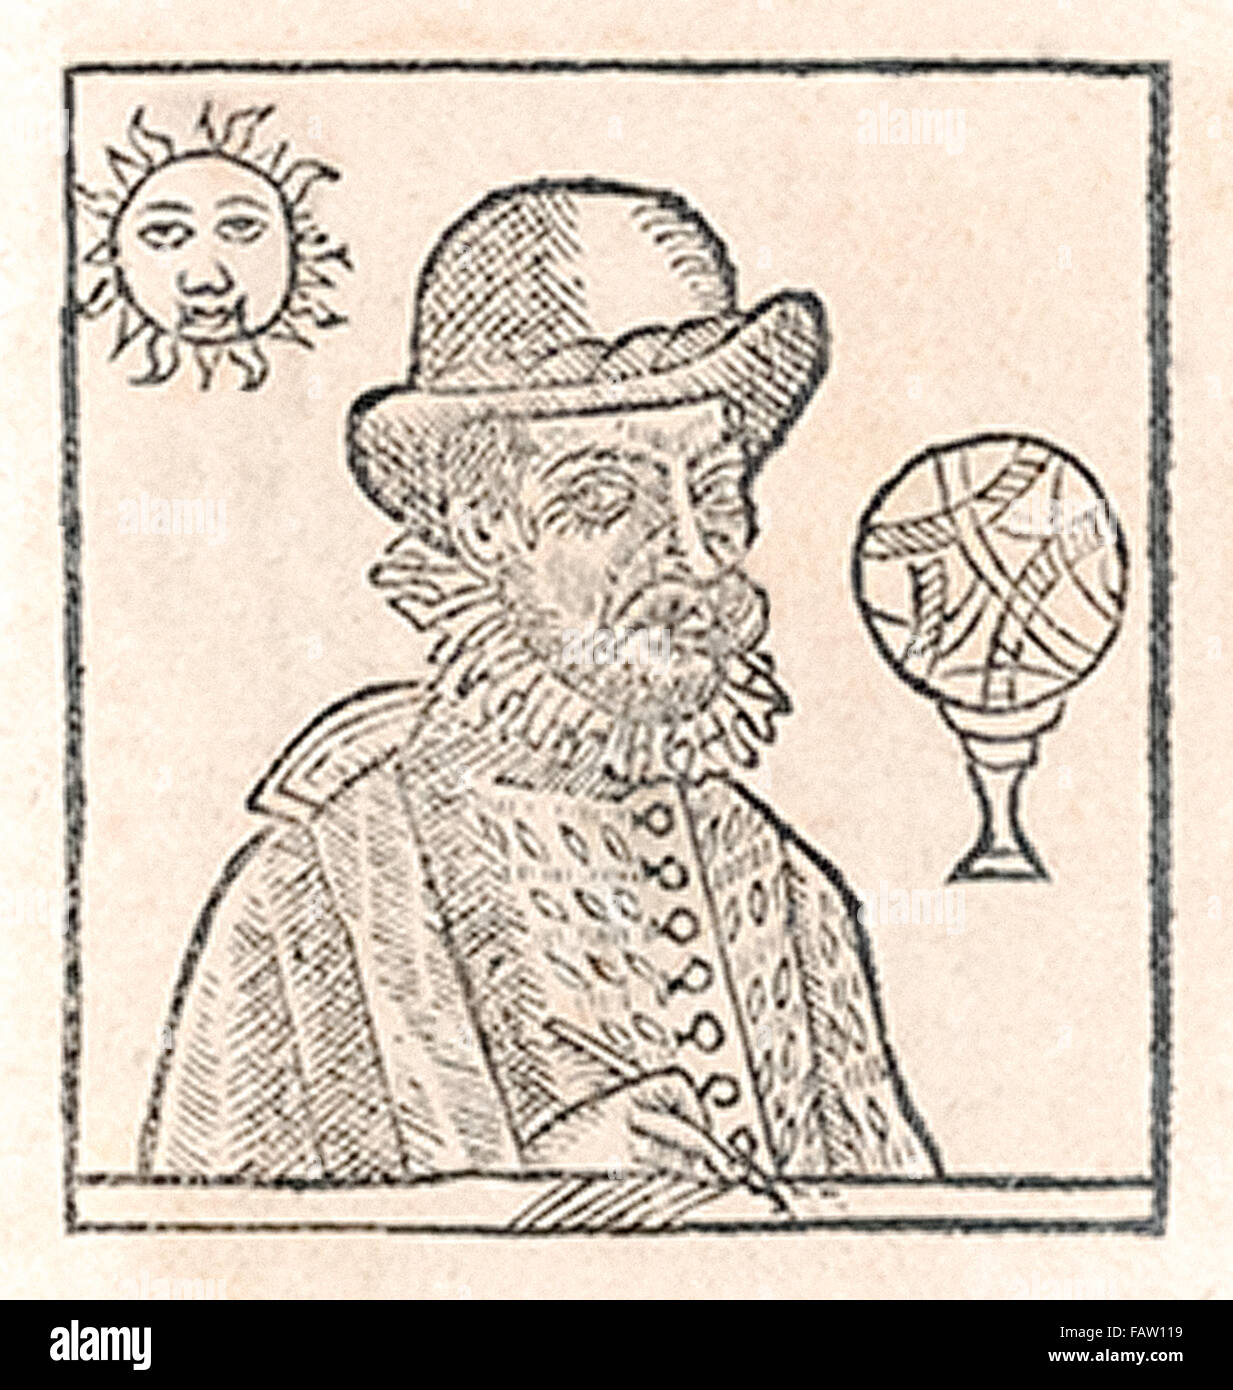 Nostradamus woodcut portrait from 1644 edition of his prophecies. - Stock Image